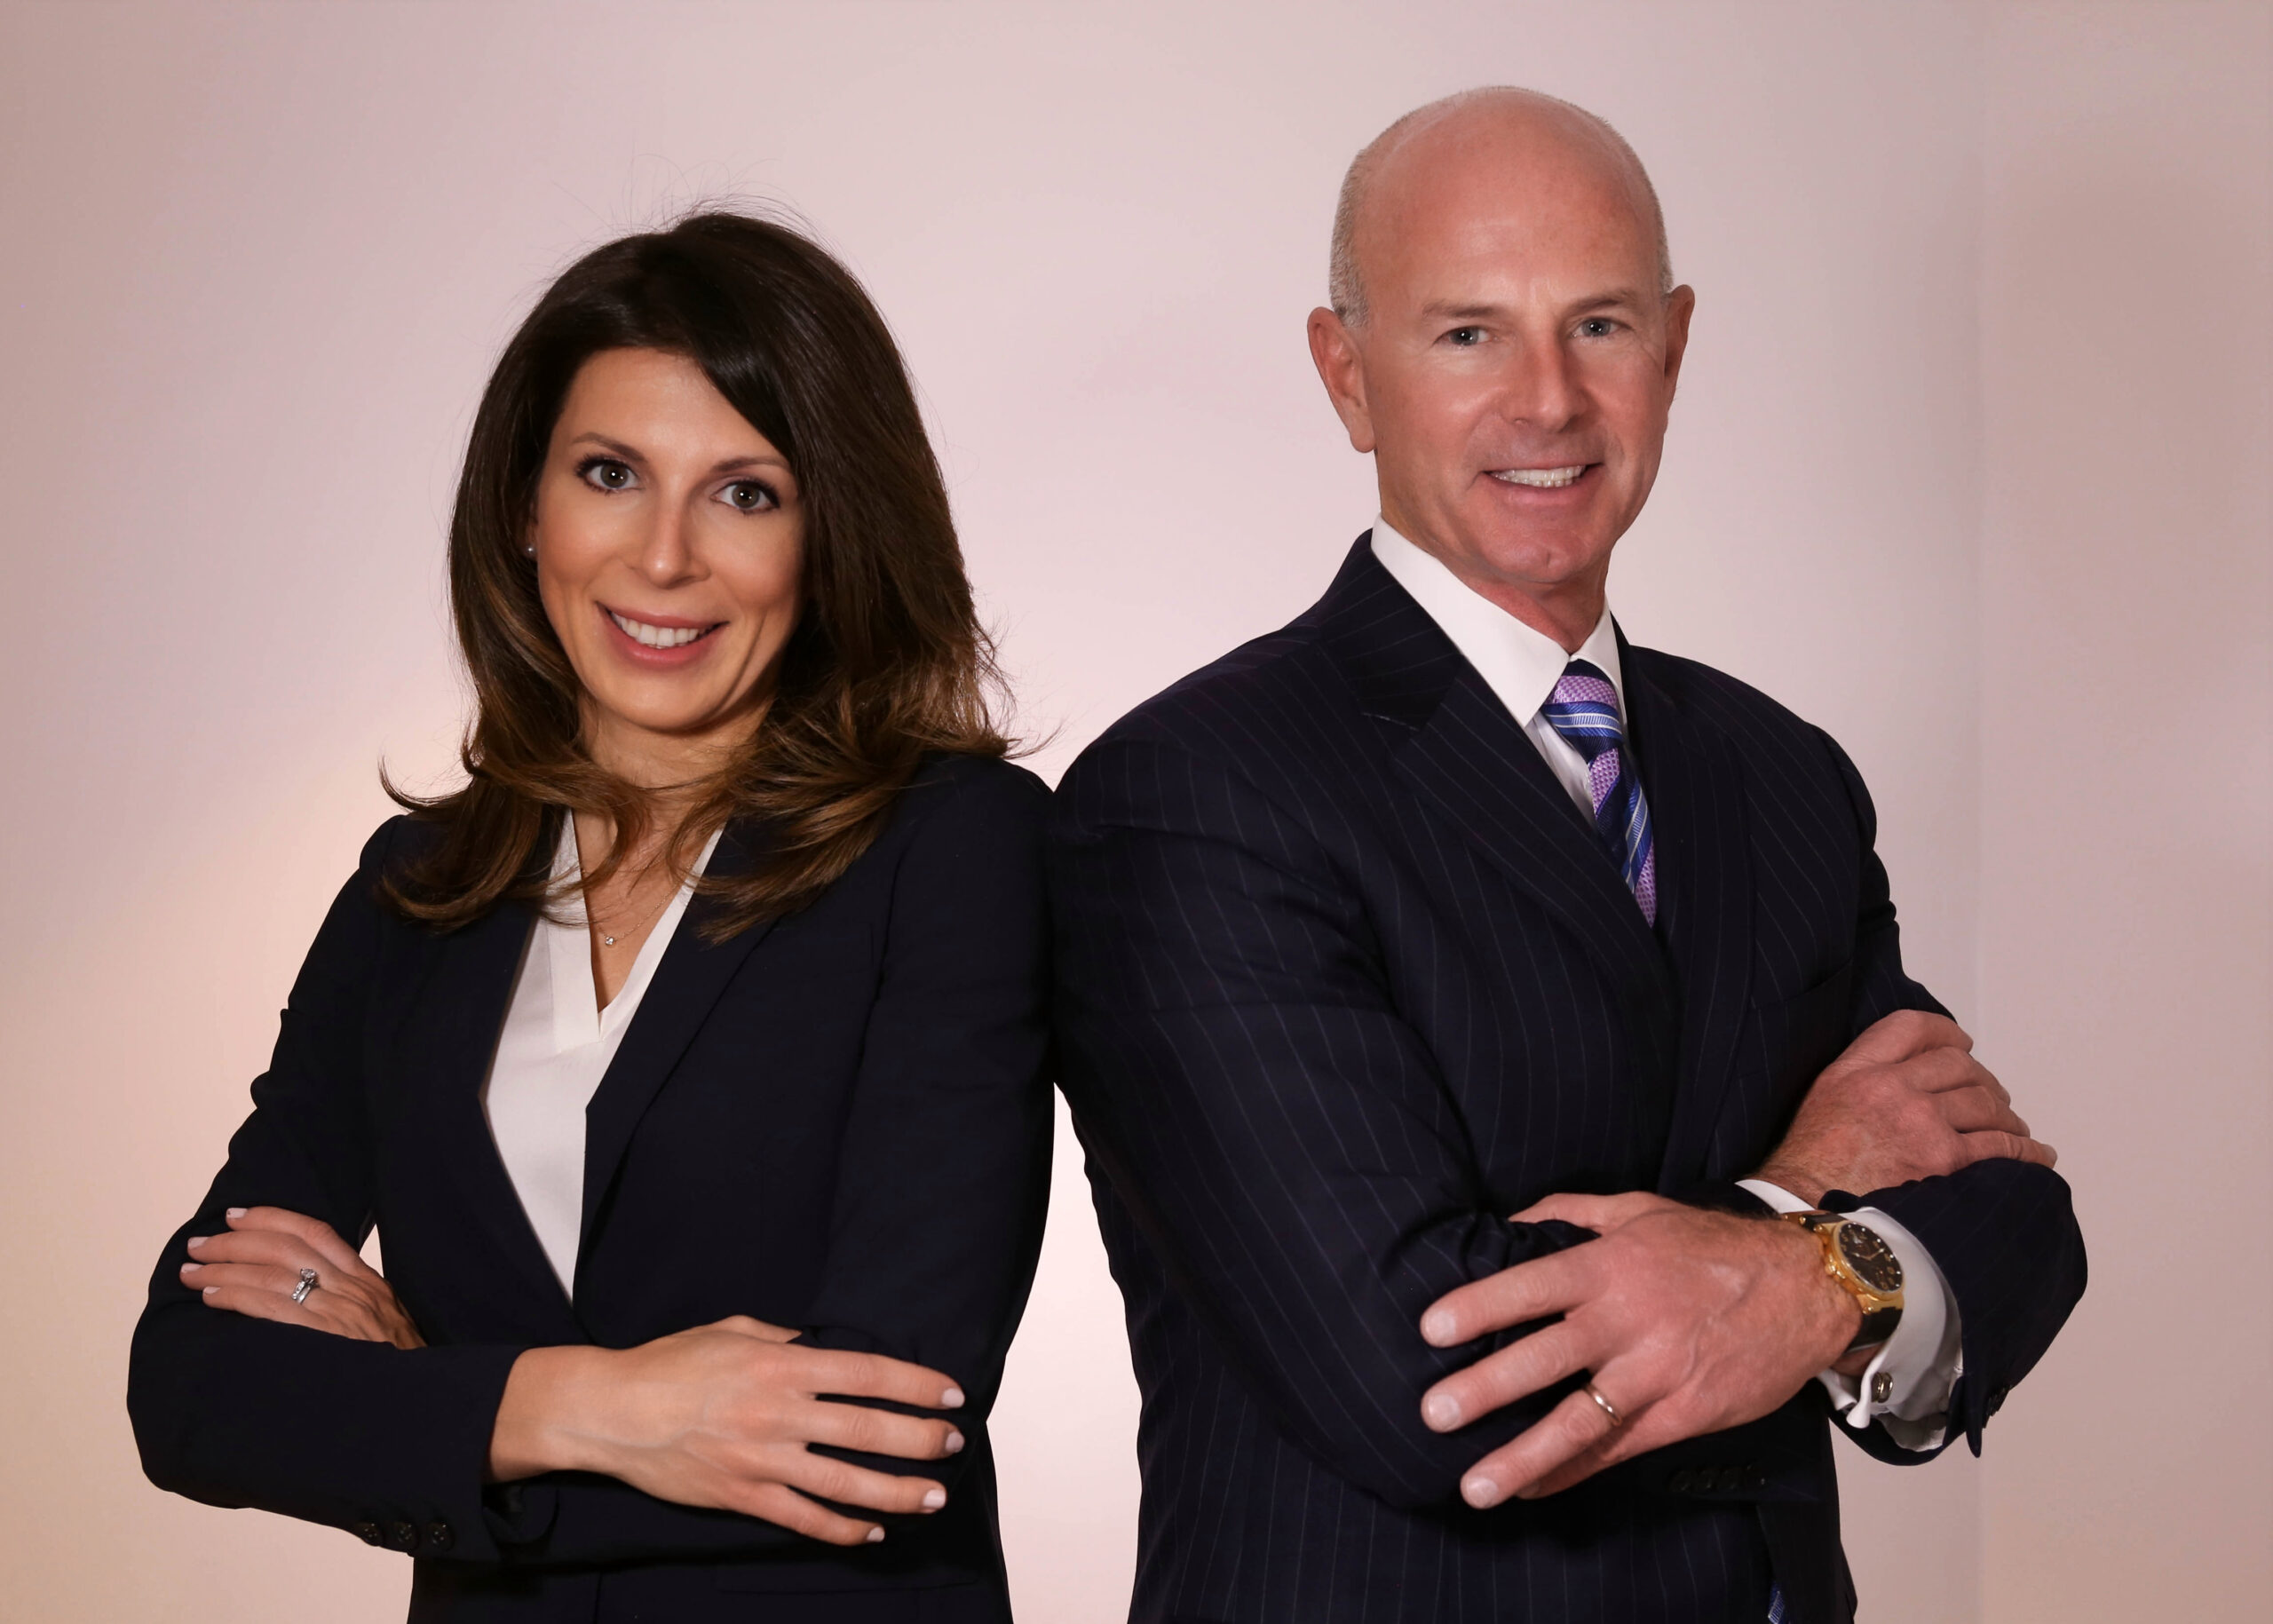 Prominent Attorneys Andy Stern and Elizabeth Crawford Launch New Law Firm Stern & Crawford, P.C. 1